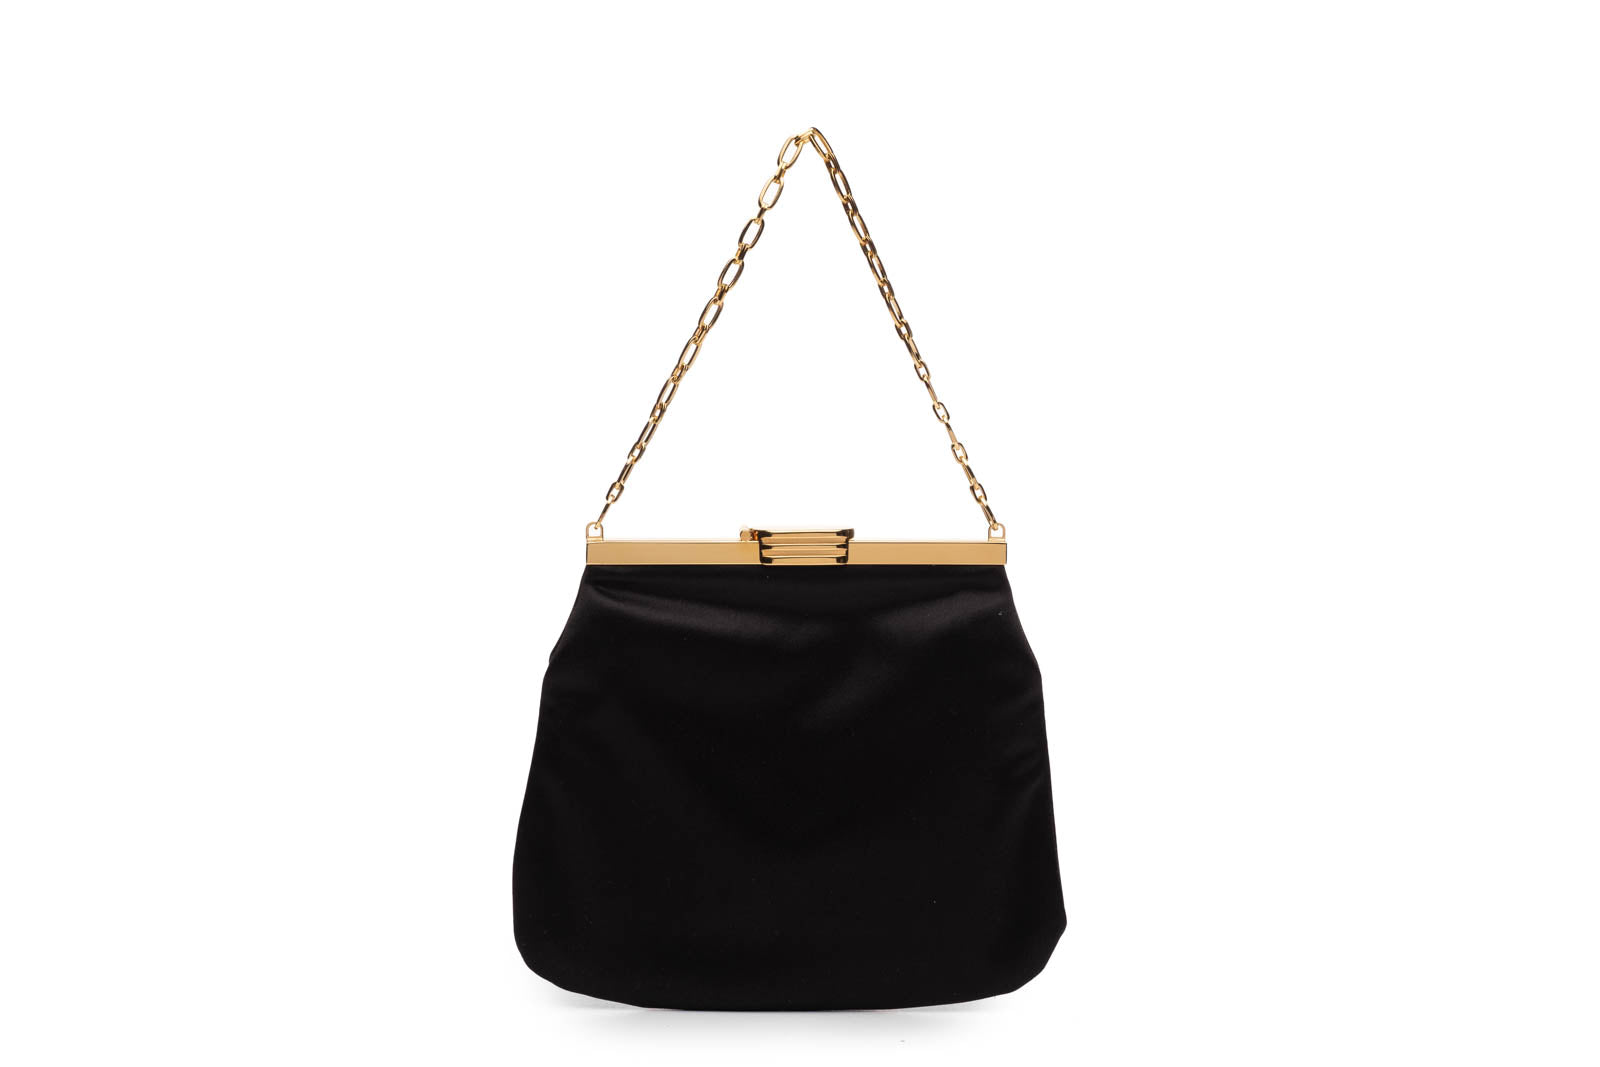 4 AM Bag in Black Silk Satin with 24k Gold Dipped Hardware